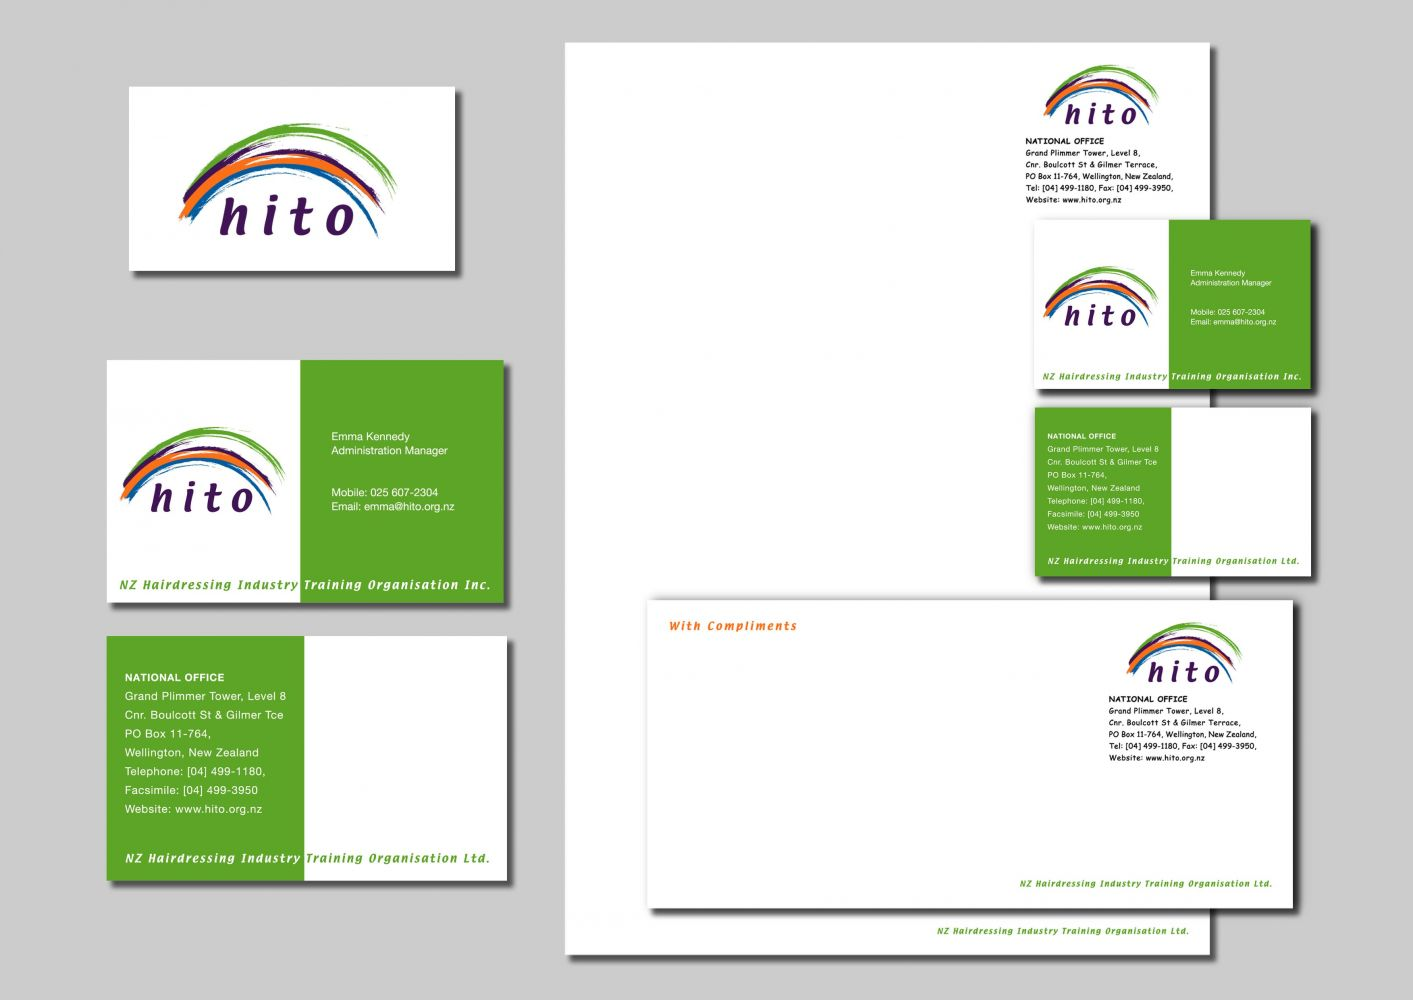 Hair & Beauty Industry Training organisation Business Stationery